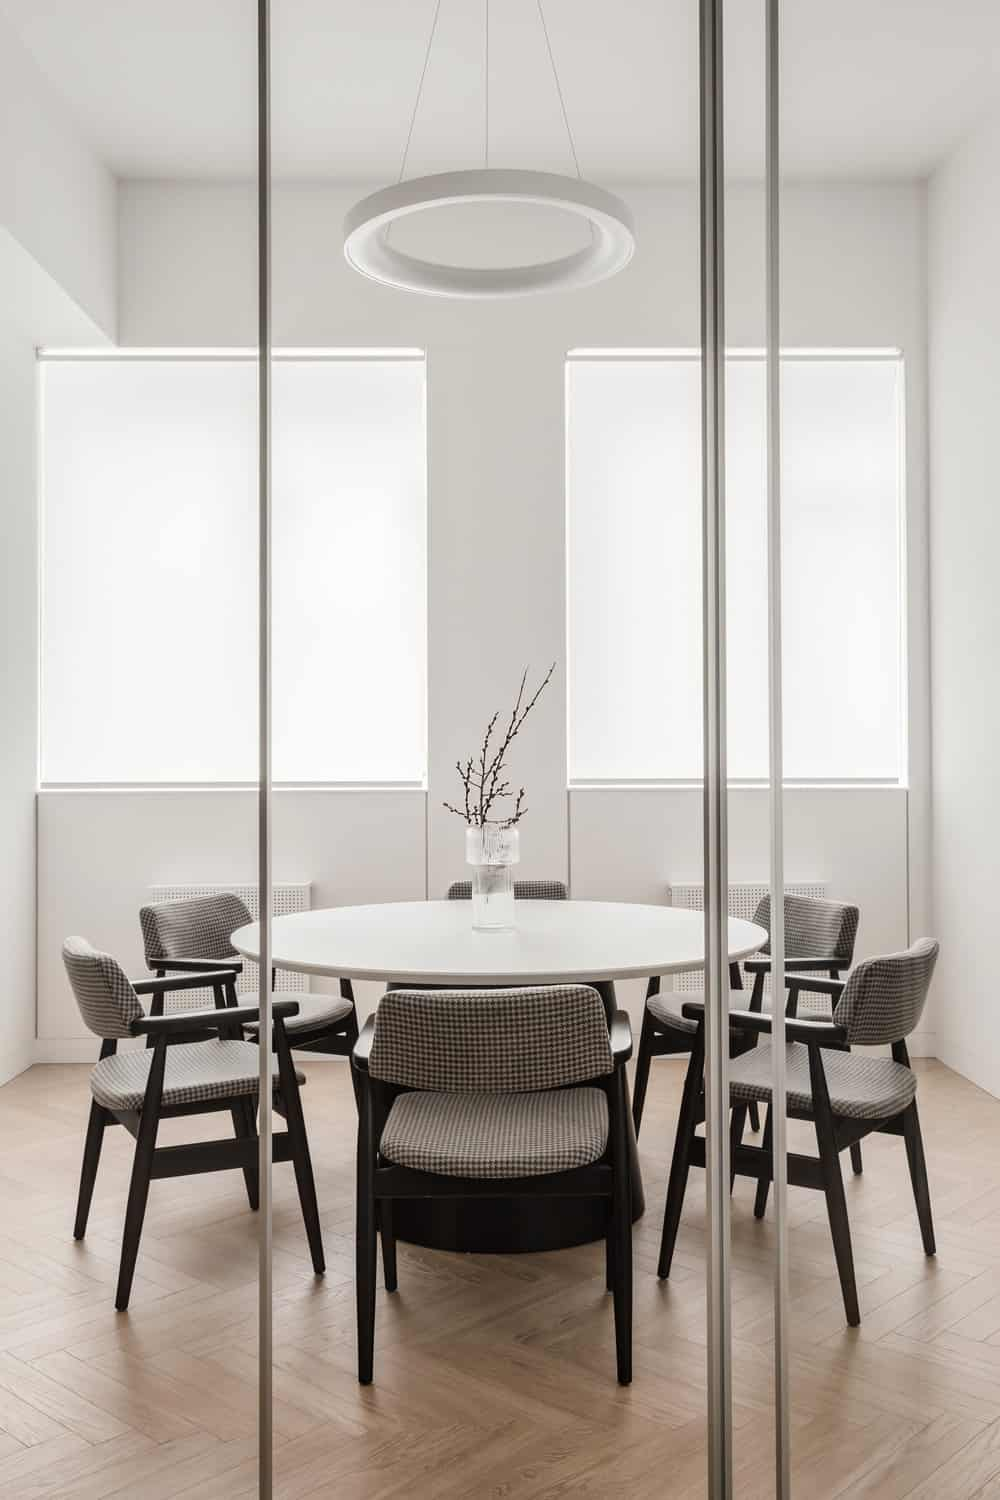 The conference room has a large round table with a lighting hanging from the ceiling.